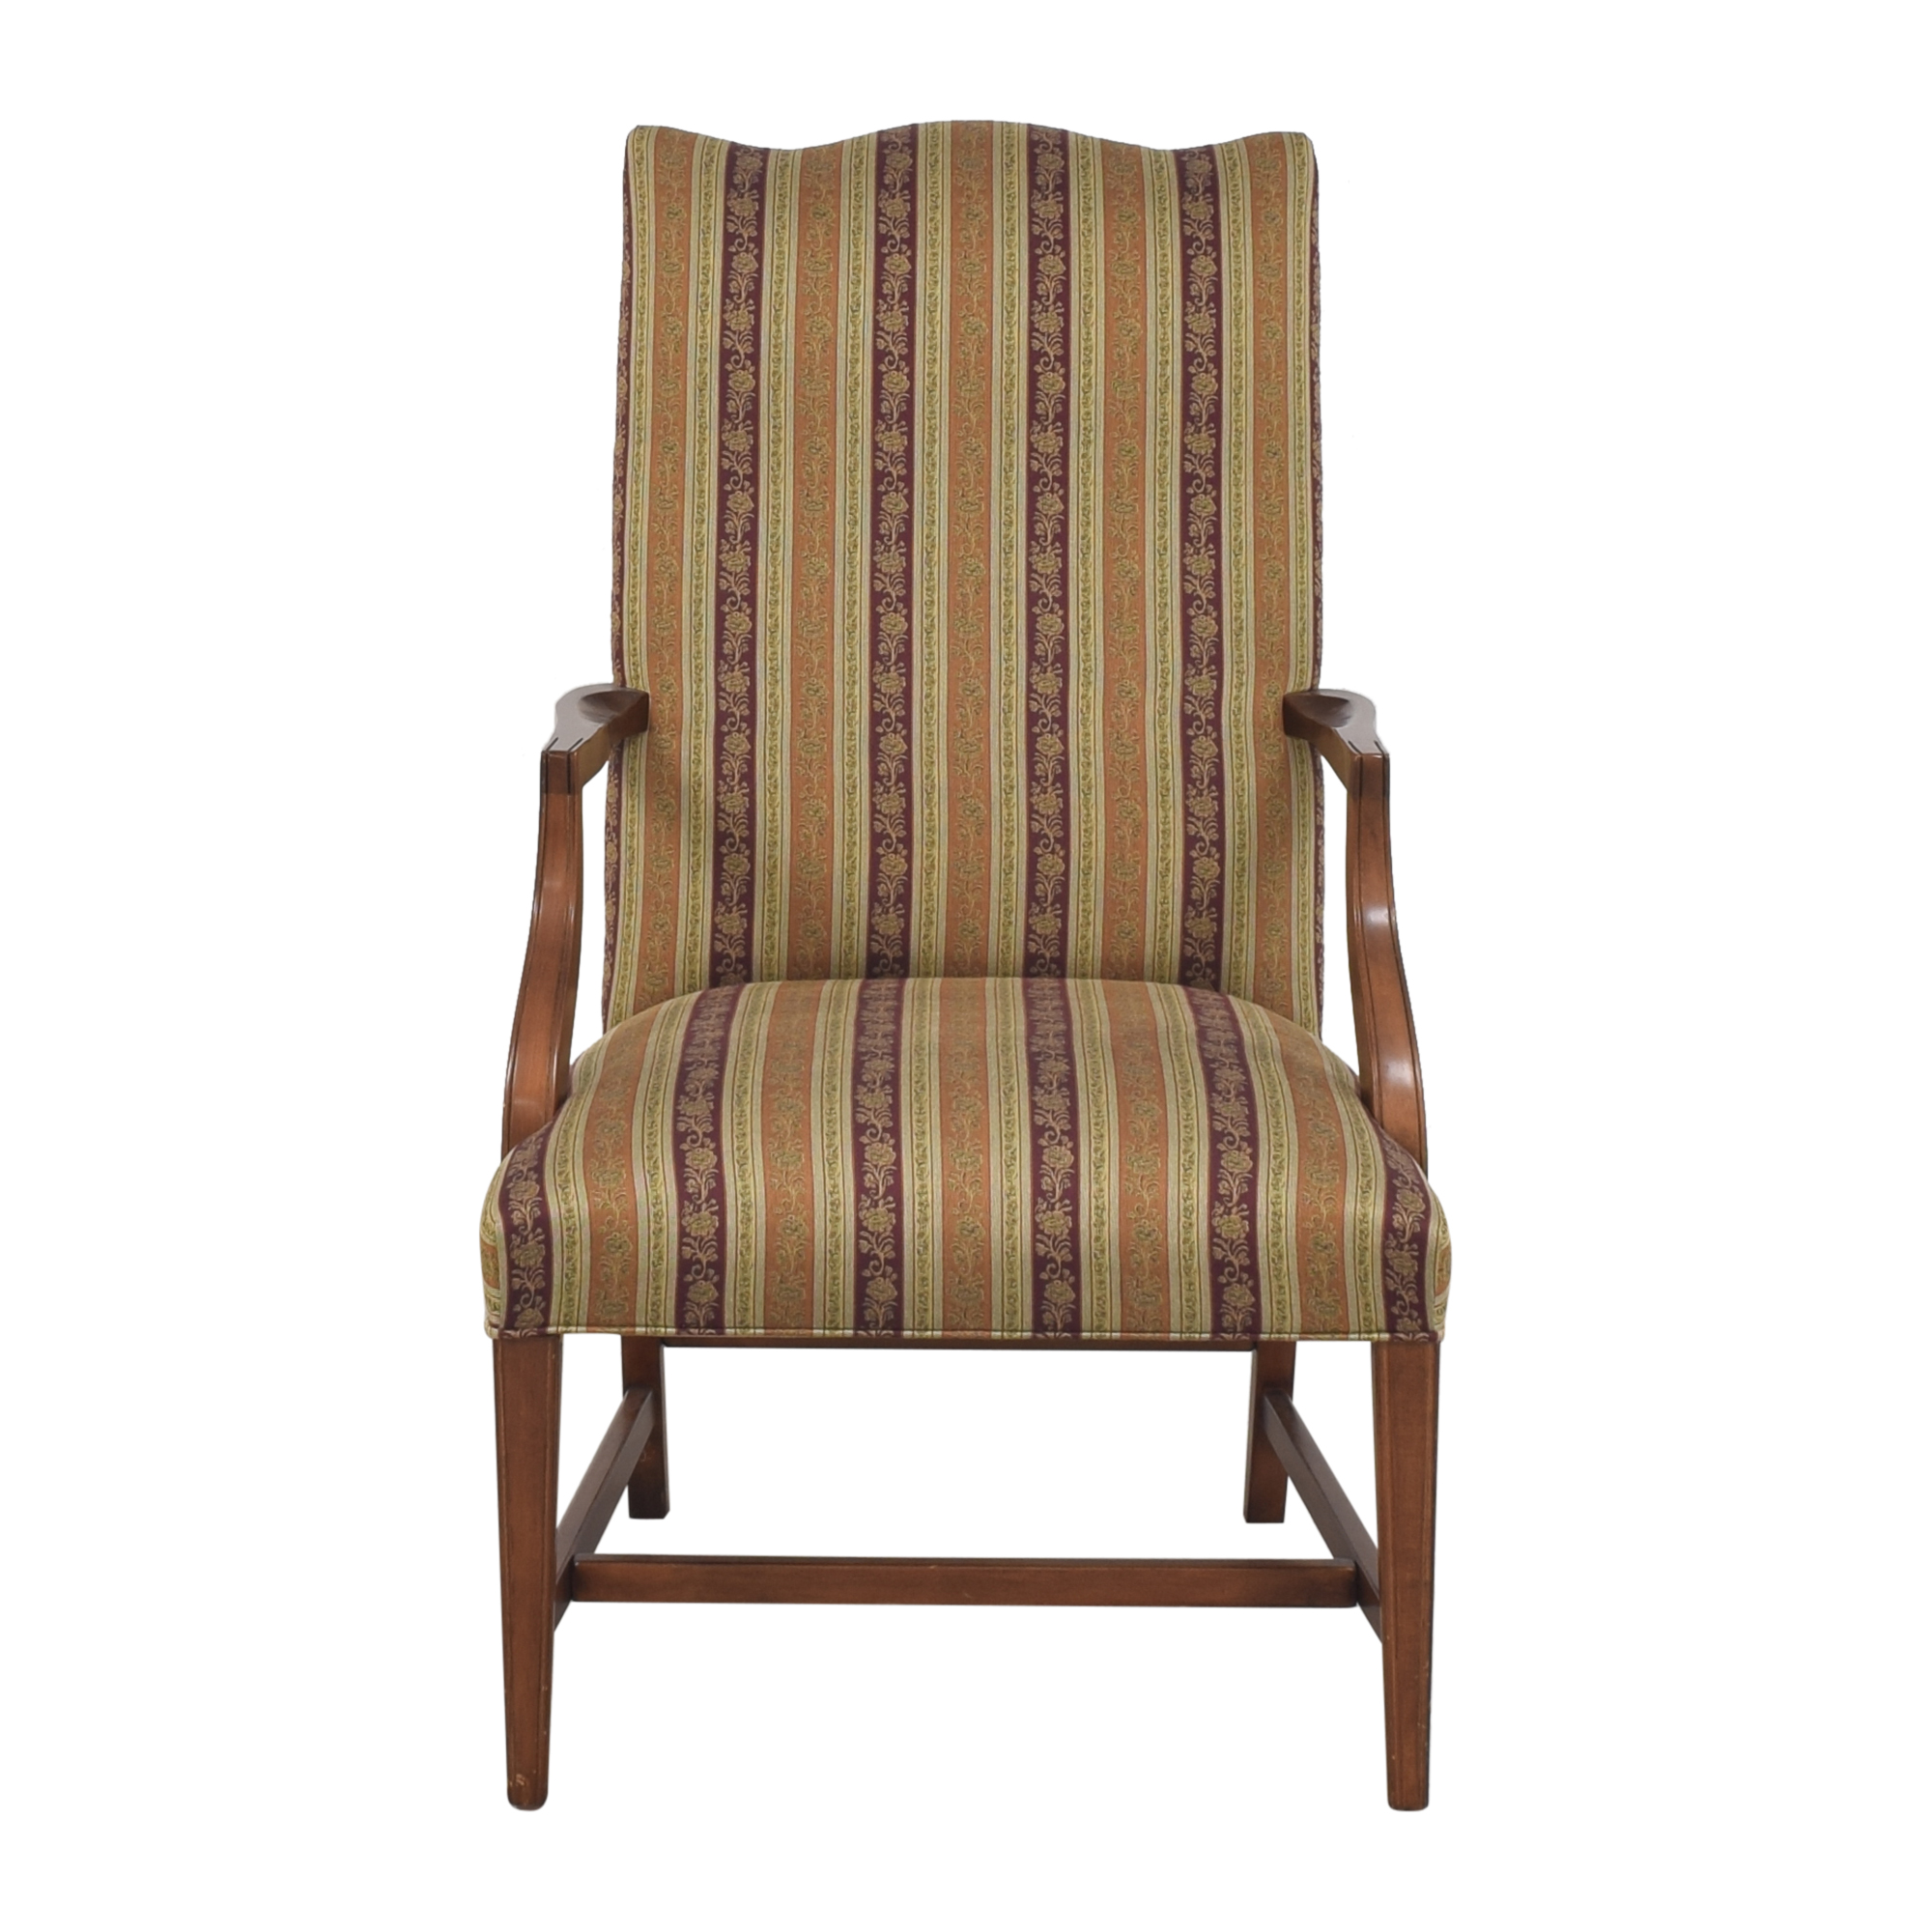 buy Ethan Allen Ethan Allen Martha Washington Arm Chair online